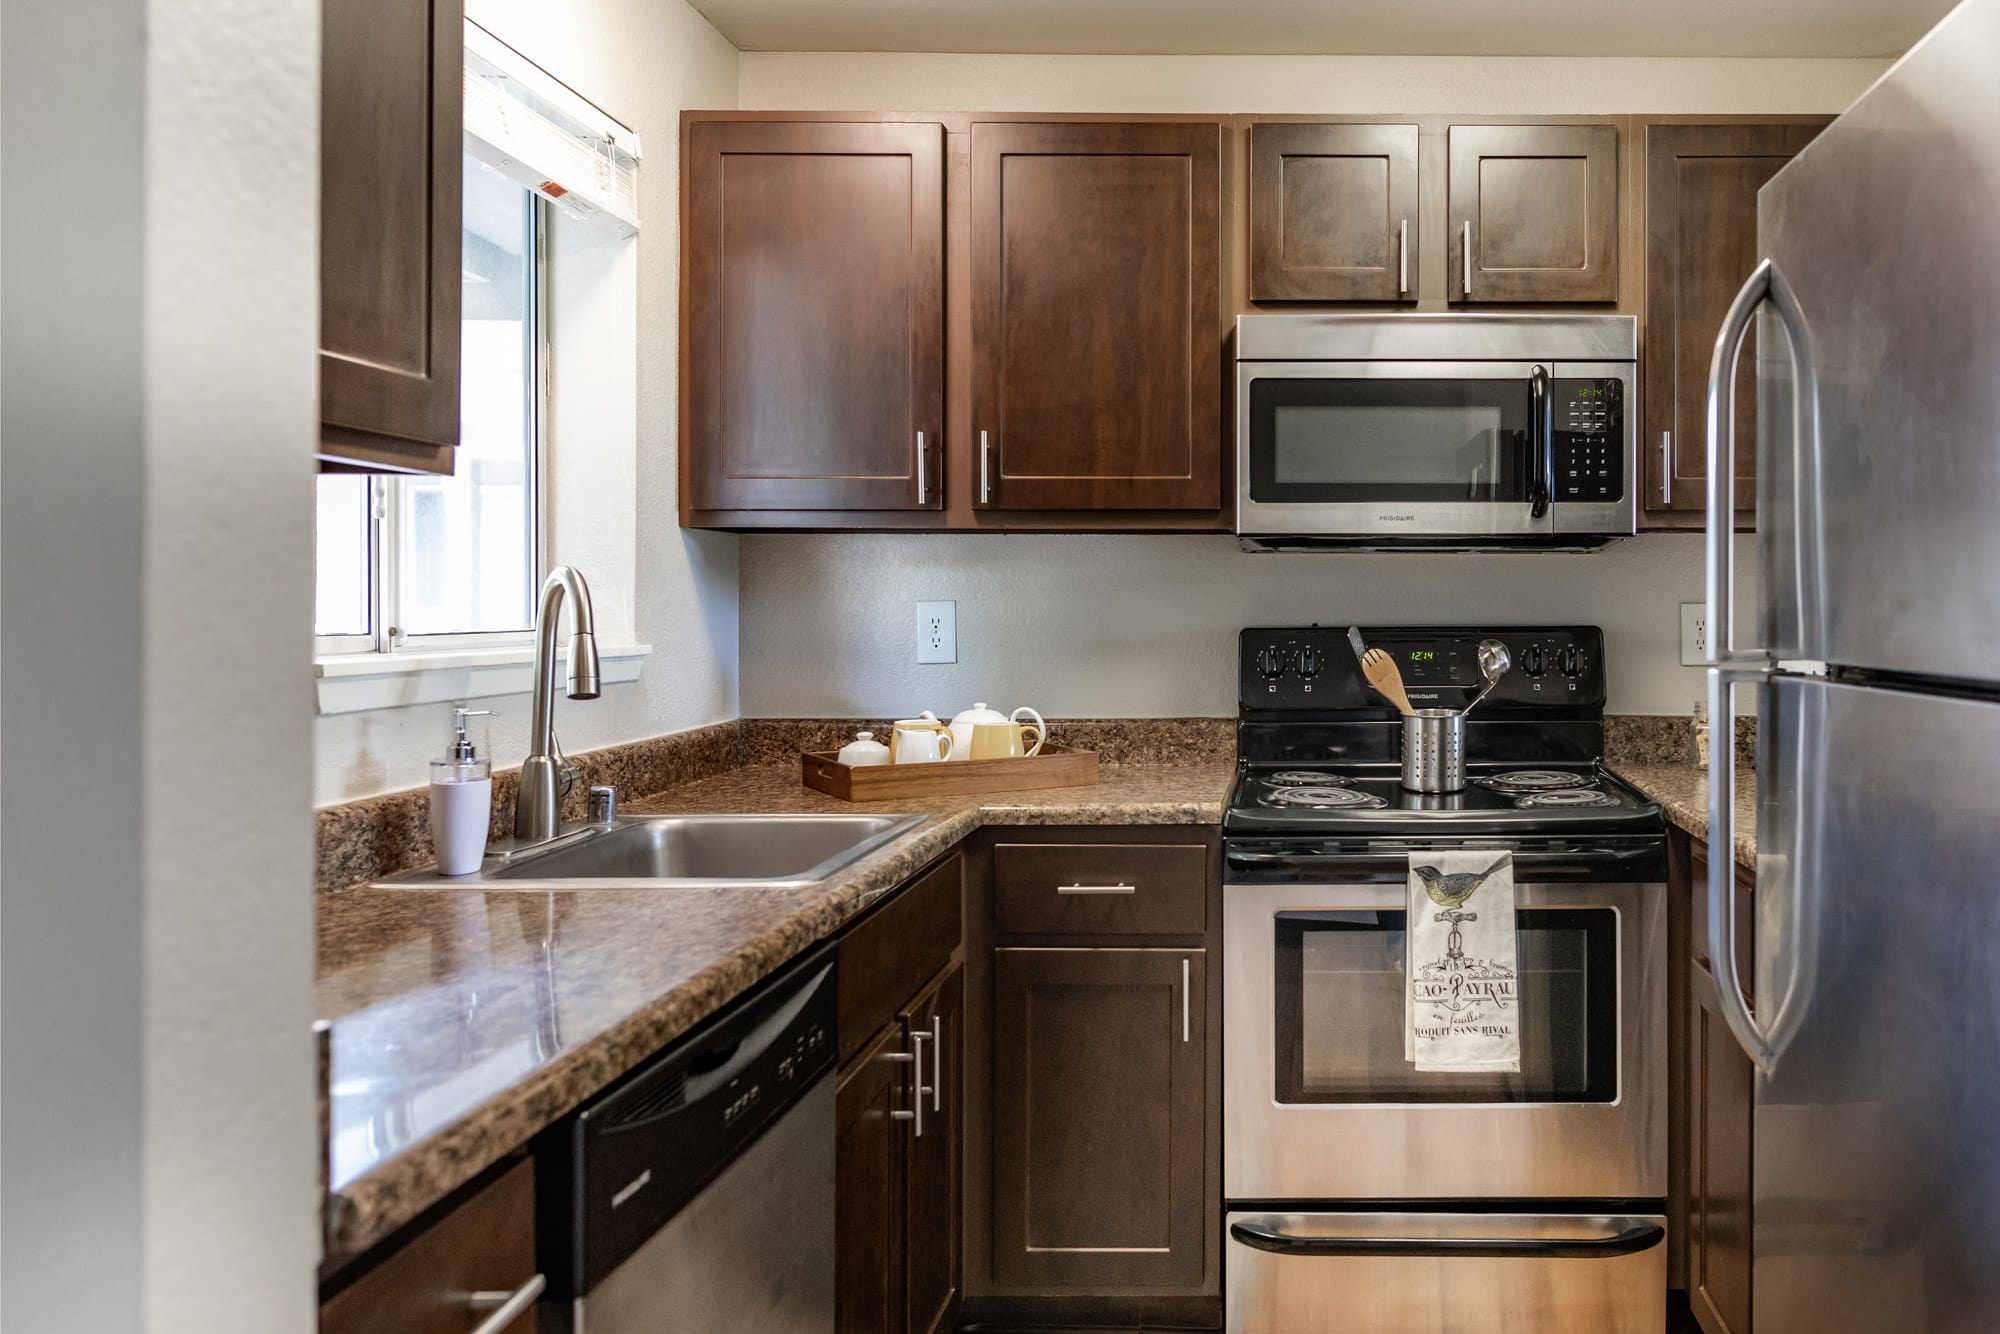 Brown renovated kitchen view with stainless steel appliances At Latitude Apartments